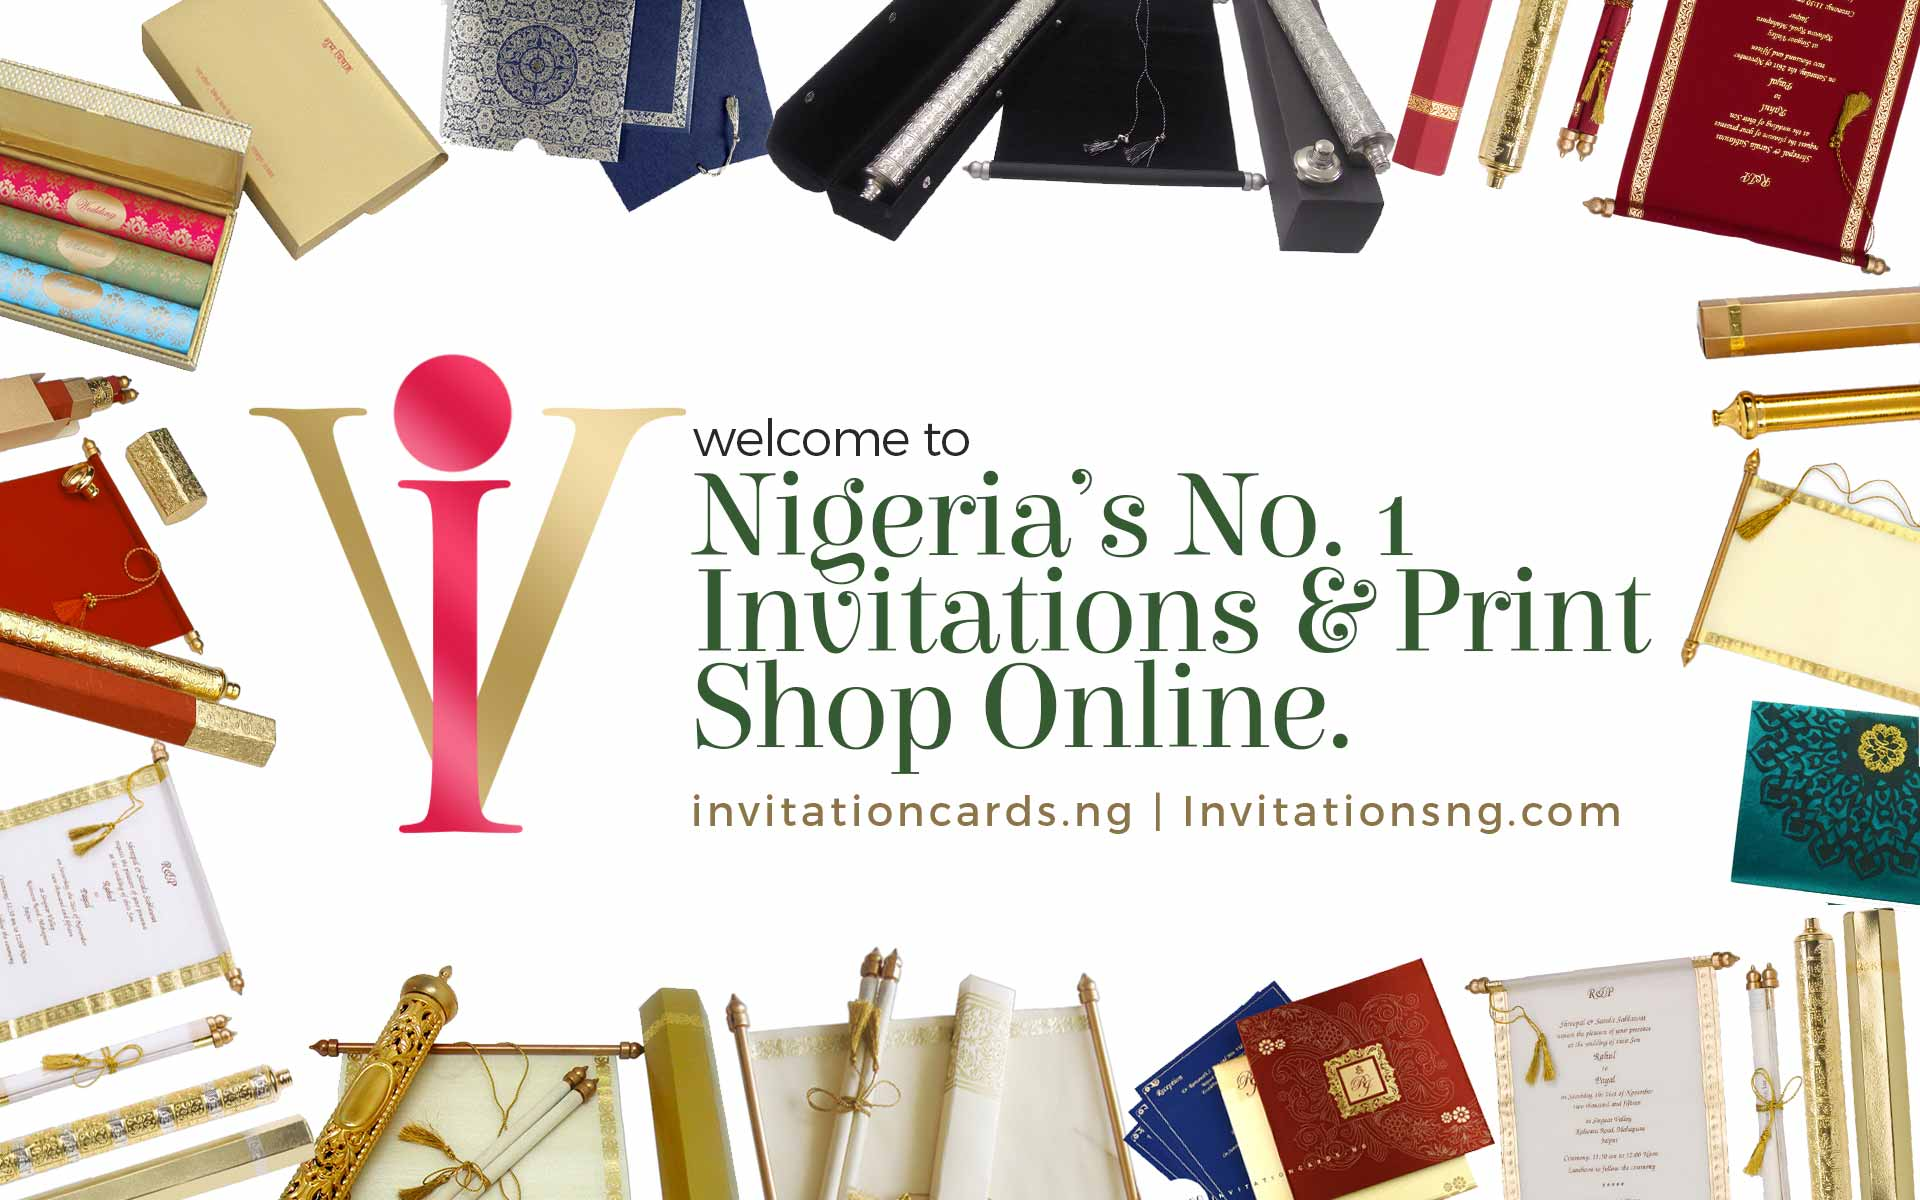 Welcome to Invitationcards.ng also trading as invitationsng.com, Nigeria's No. 1 Invitations & Print Shop Online